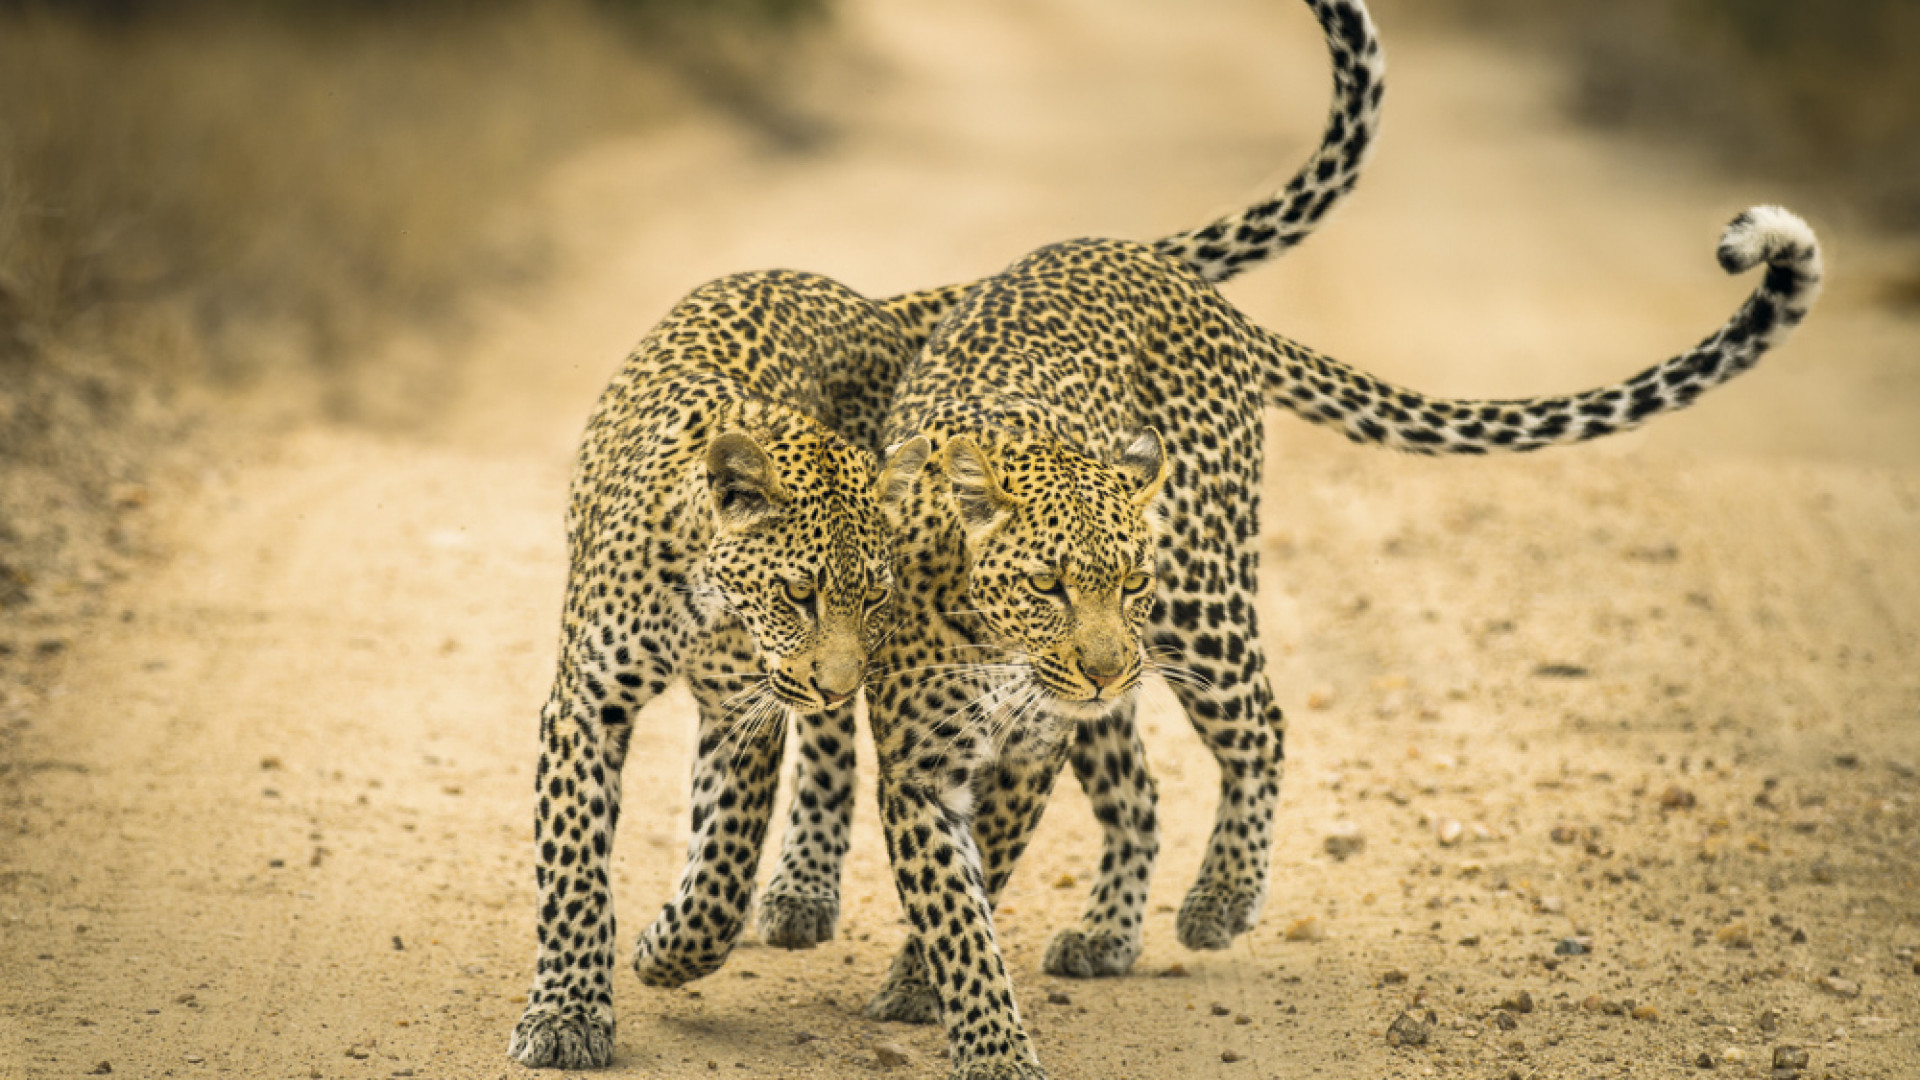 A leopard and her cub in Timbayati Game Reserve, South Africa